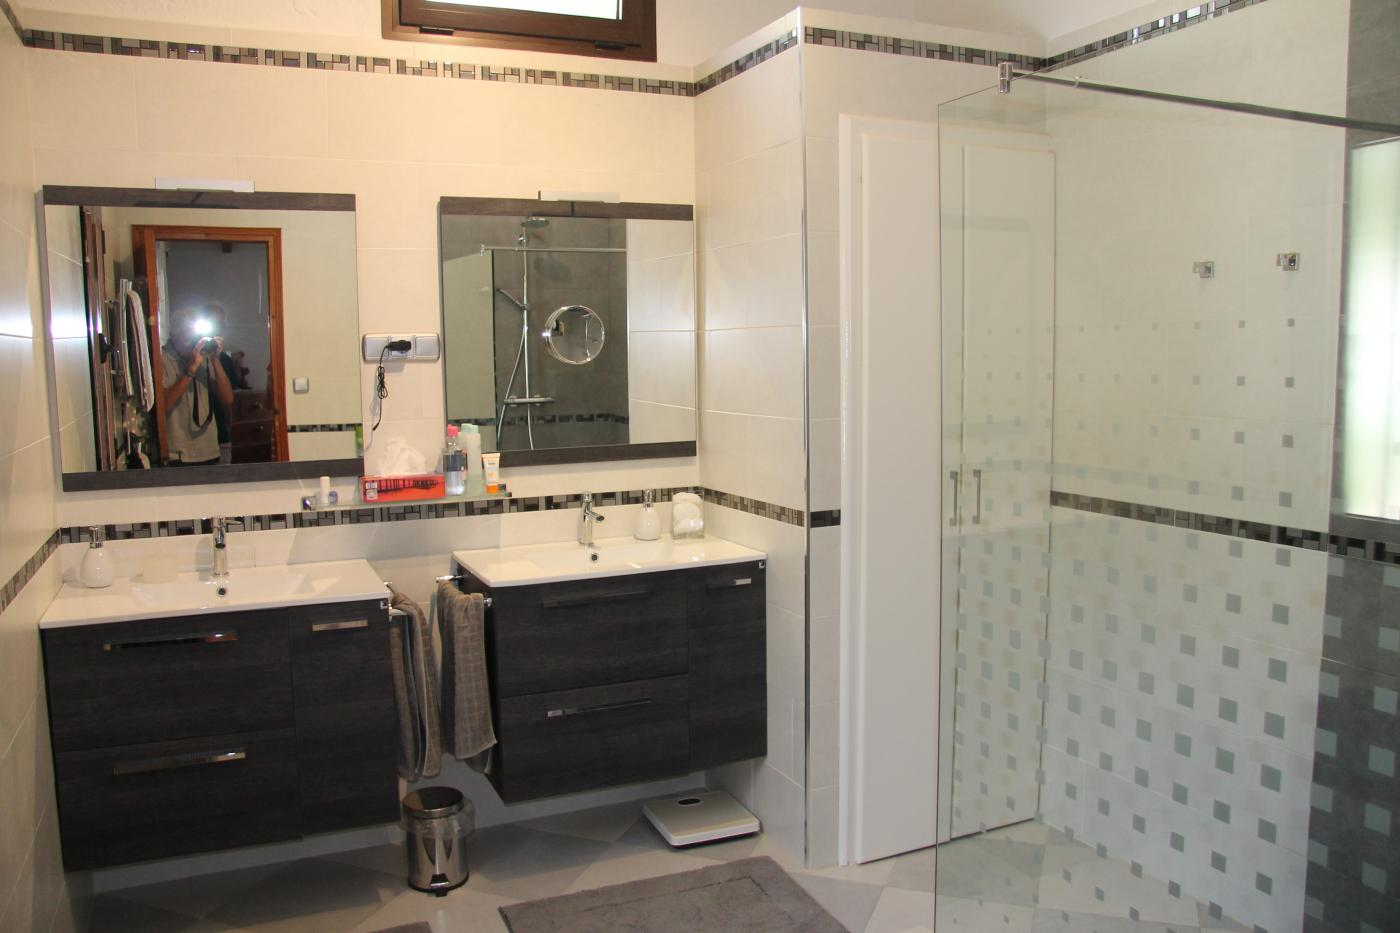 2 Bedroom Commercial for Sale in Malaga